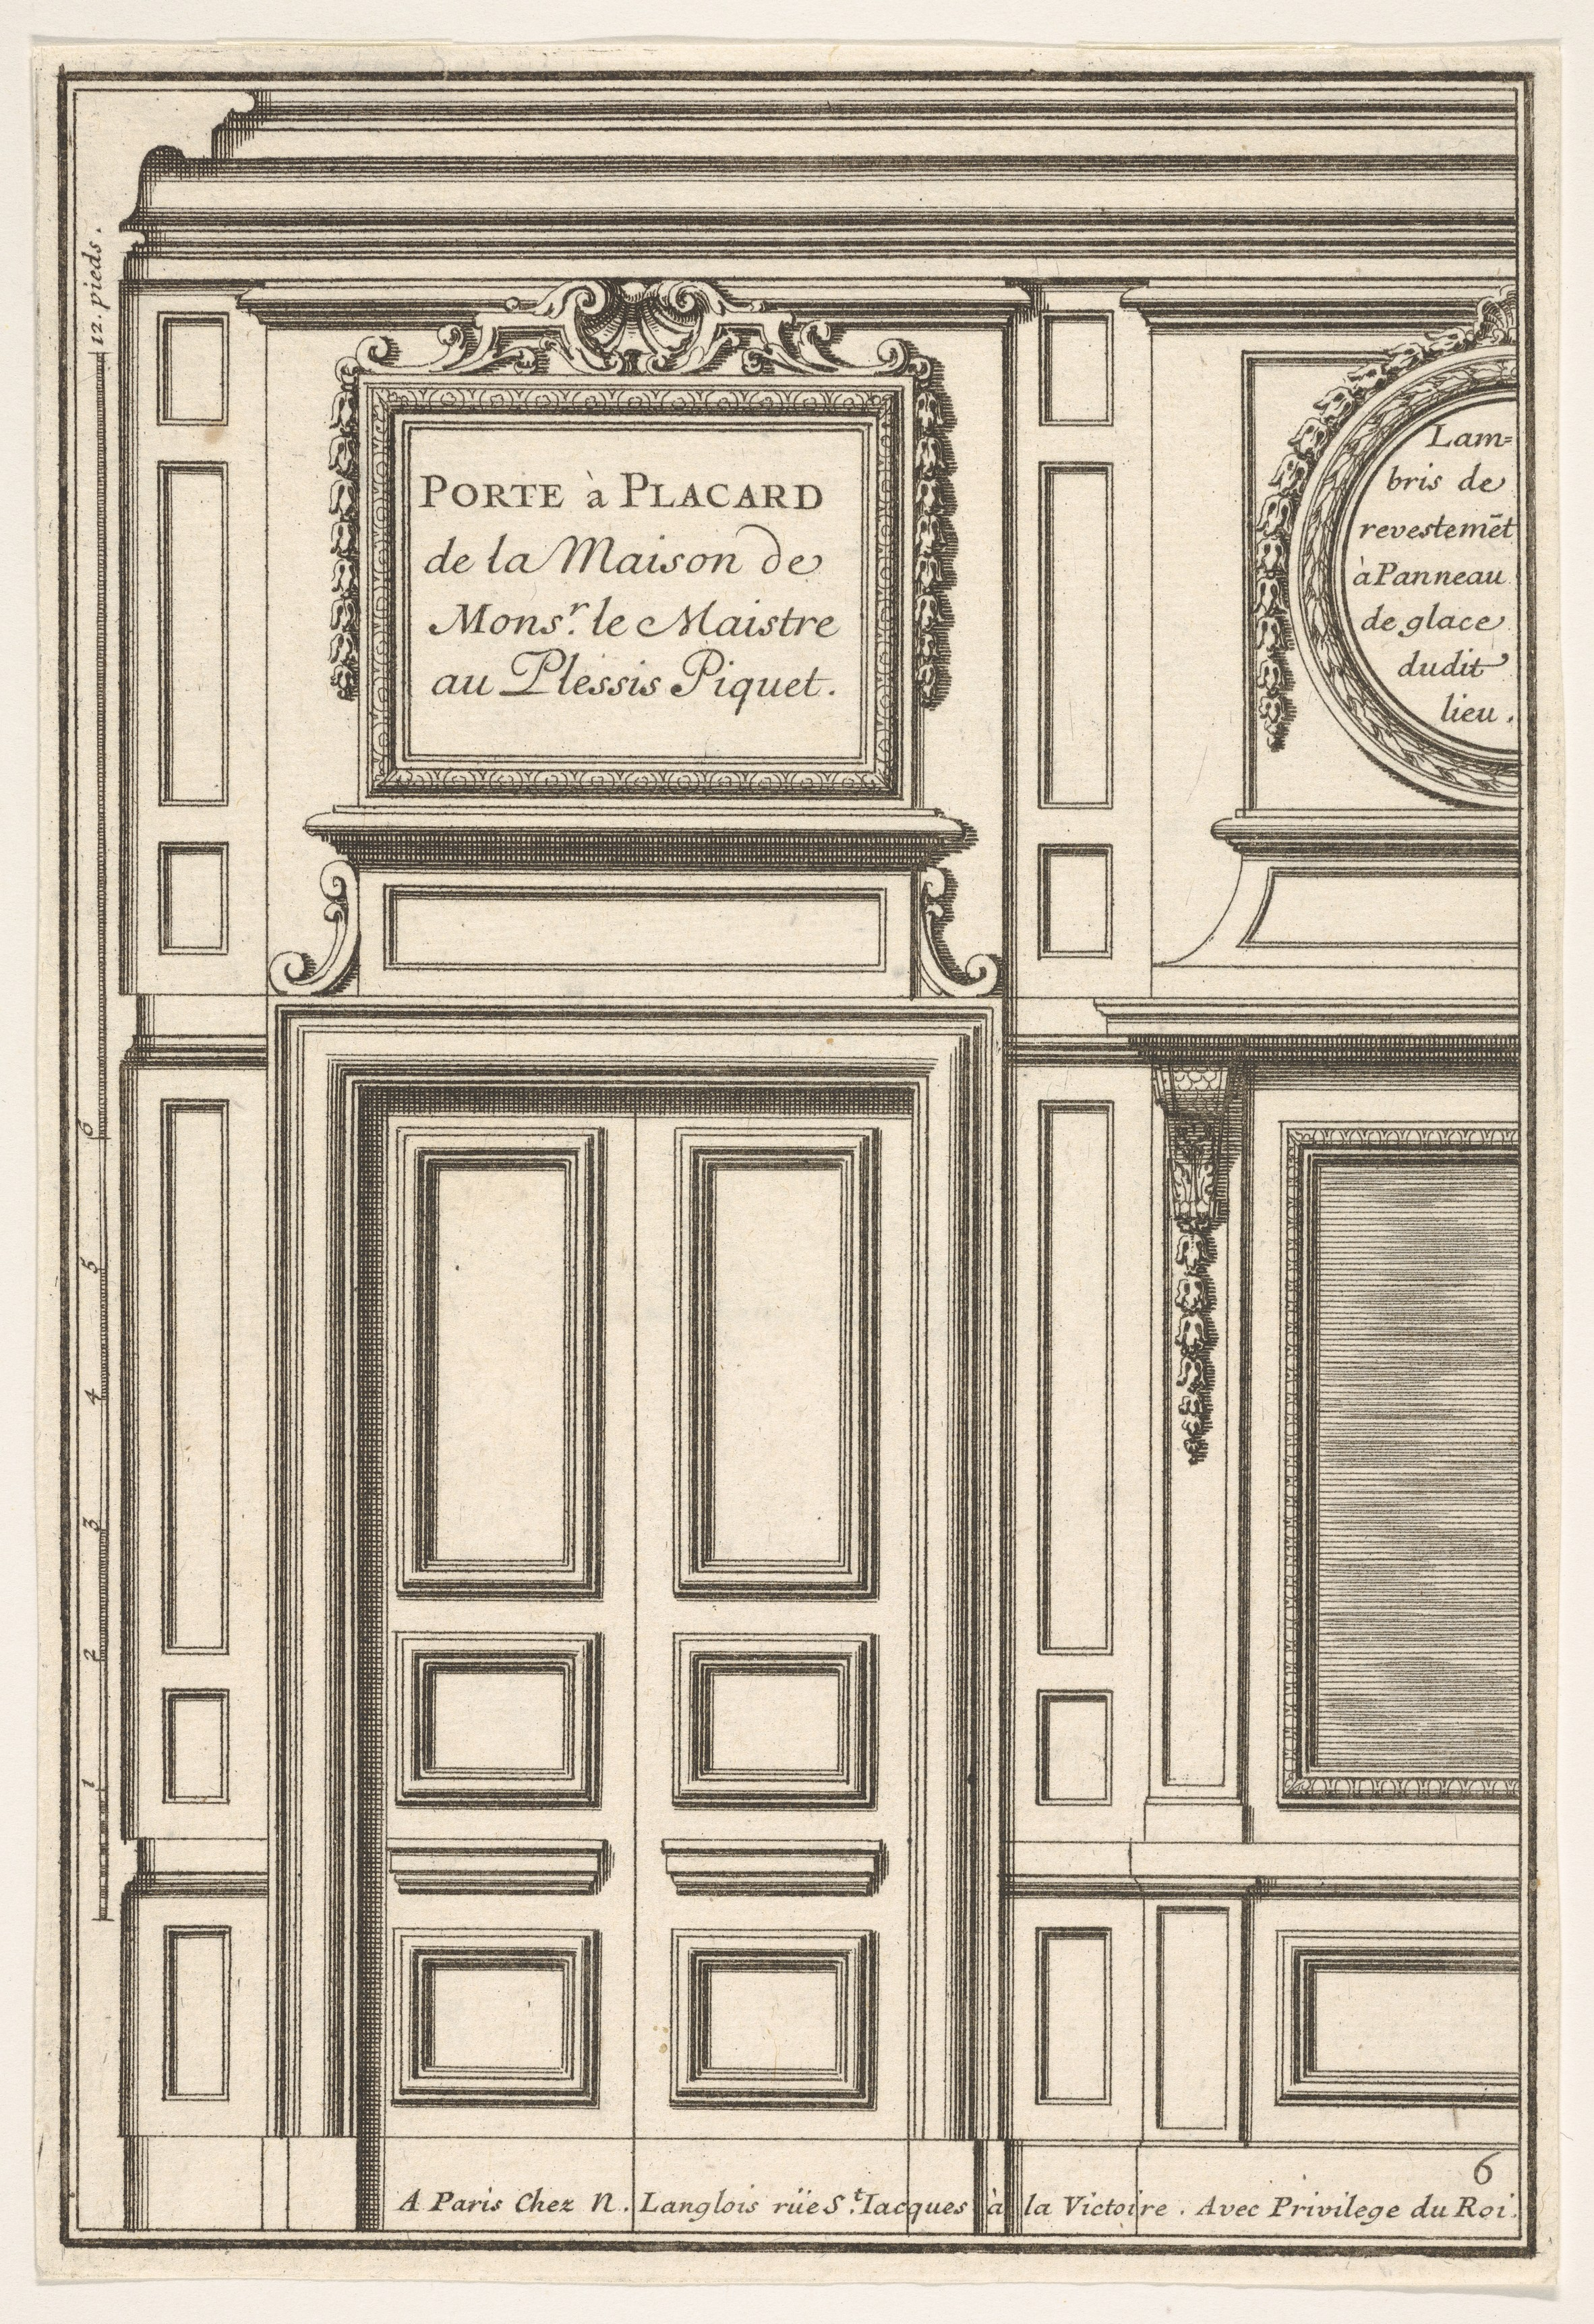 FileDoor and Part of the Wall Paneling with Mirrored Glass from the House of \u0027Monsieur le Maître\u0027 at Plessis Piquet plate VI from the Series \u0027Portes a ...  sc 1 st  Wikimedia Commons & File:Door and Part of the Wall Paneling with Mirrored Glass from ...